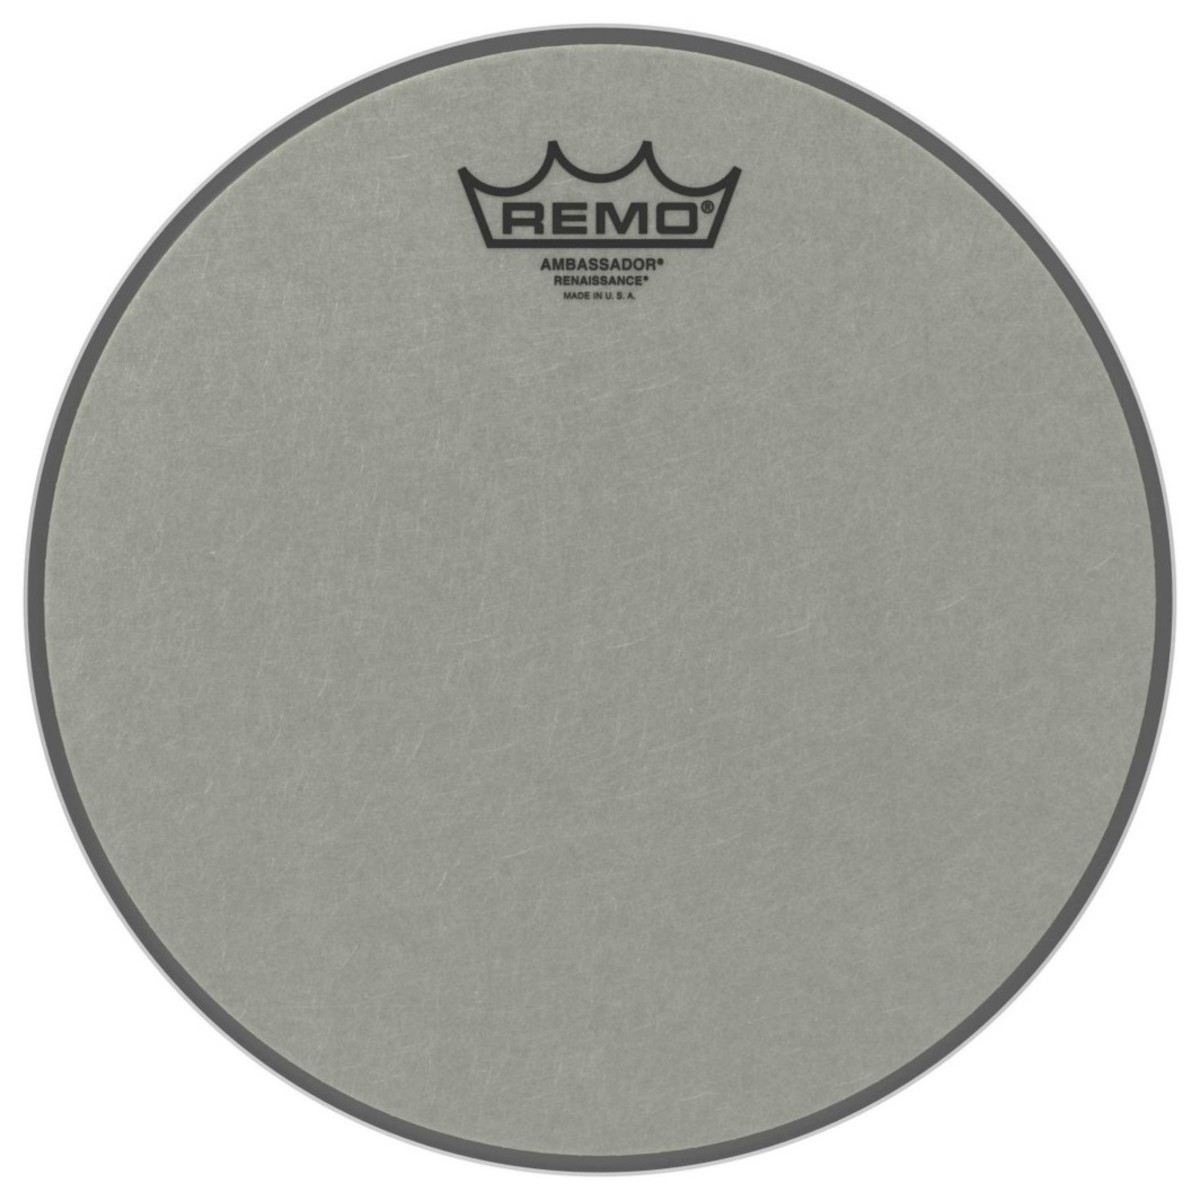 Click to view product details and reviews for Remo Ambassador Renaissance 13 Drum Head.